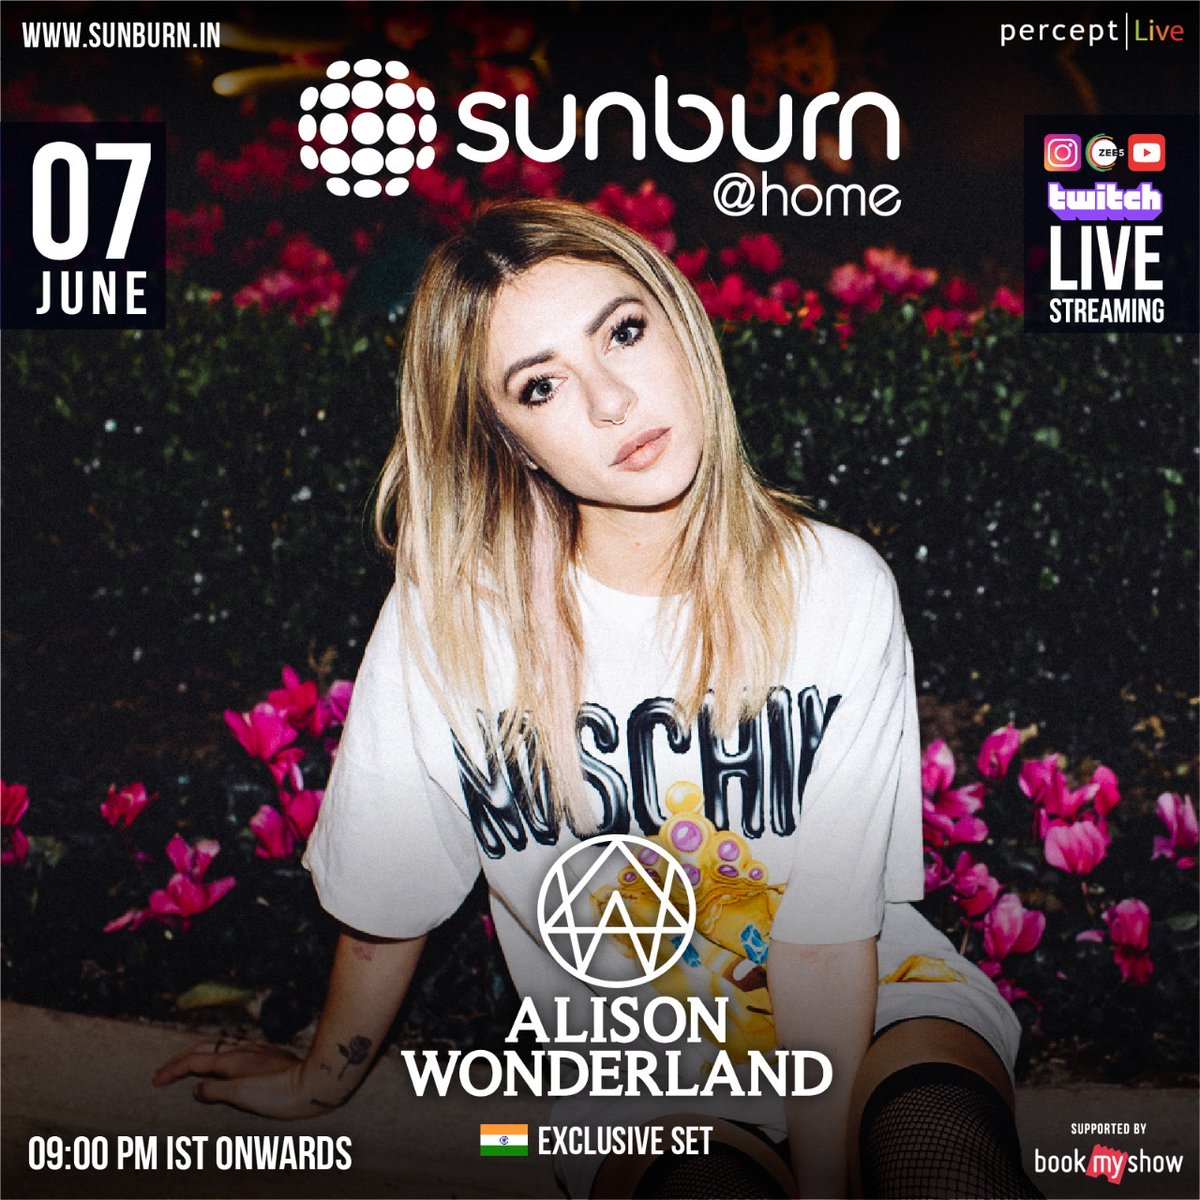 #Attention The Australian Producer, Songwriter, DJ know globally for her Future Bass & Trap Music @awonderland  to takeover #SunburnAtHome  this Sunday for her Special  Exclusive Get ready for her India digital debut!  9 PM IST onwards only our social media handles!pic.twitter.com/RBTak3JQgi